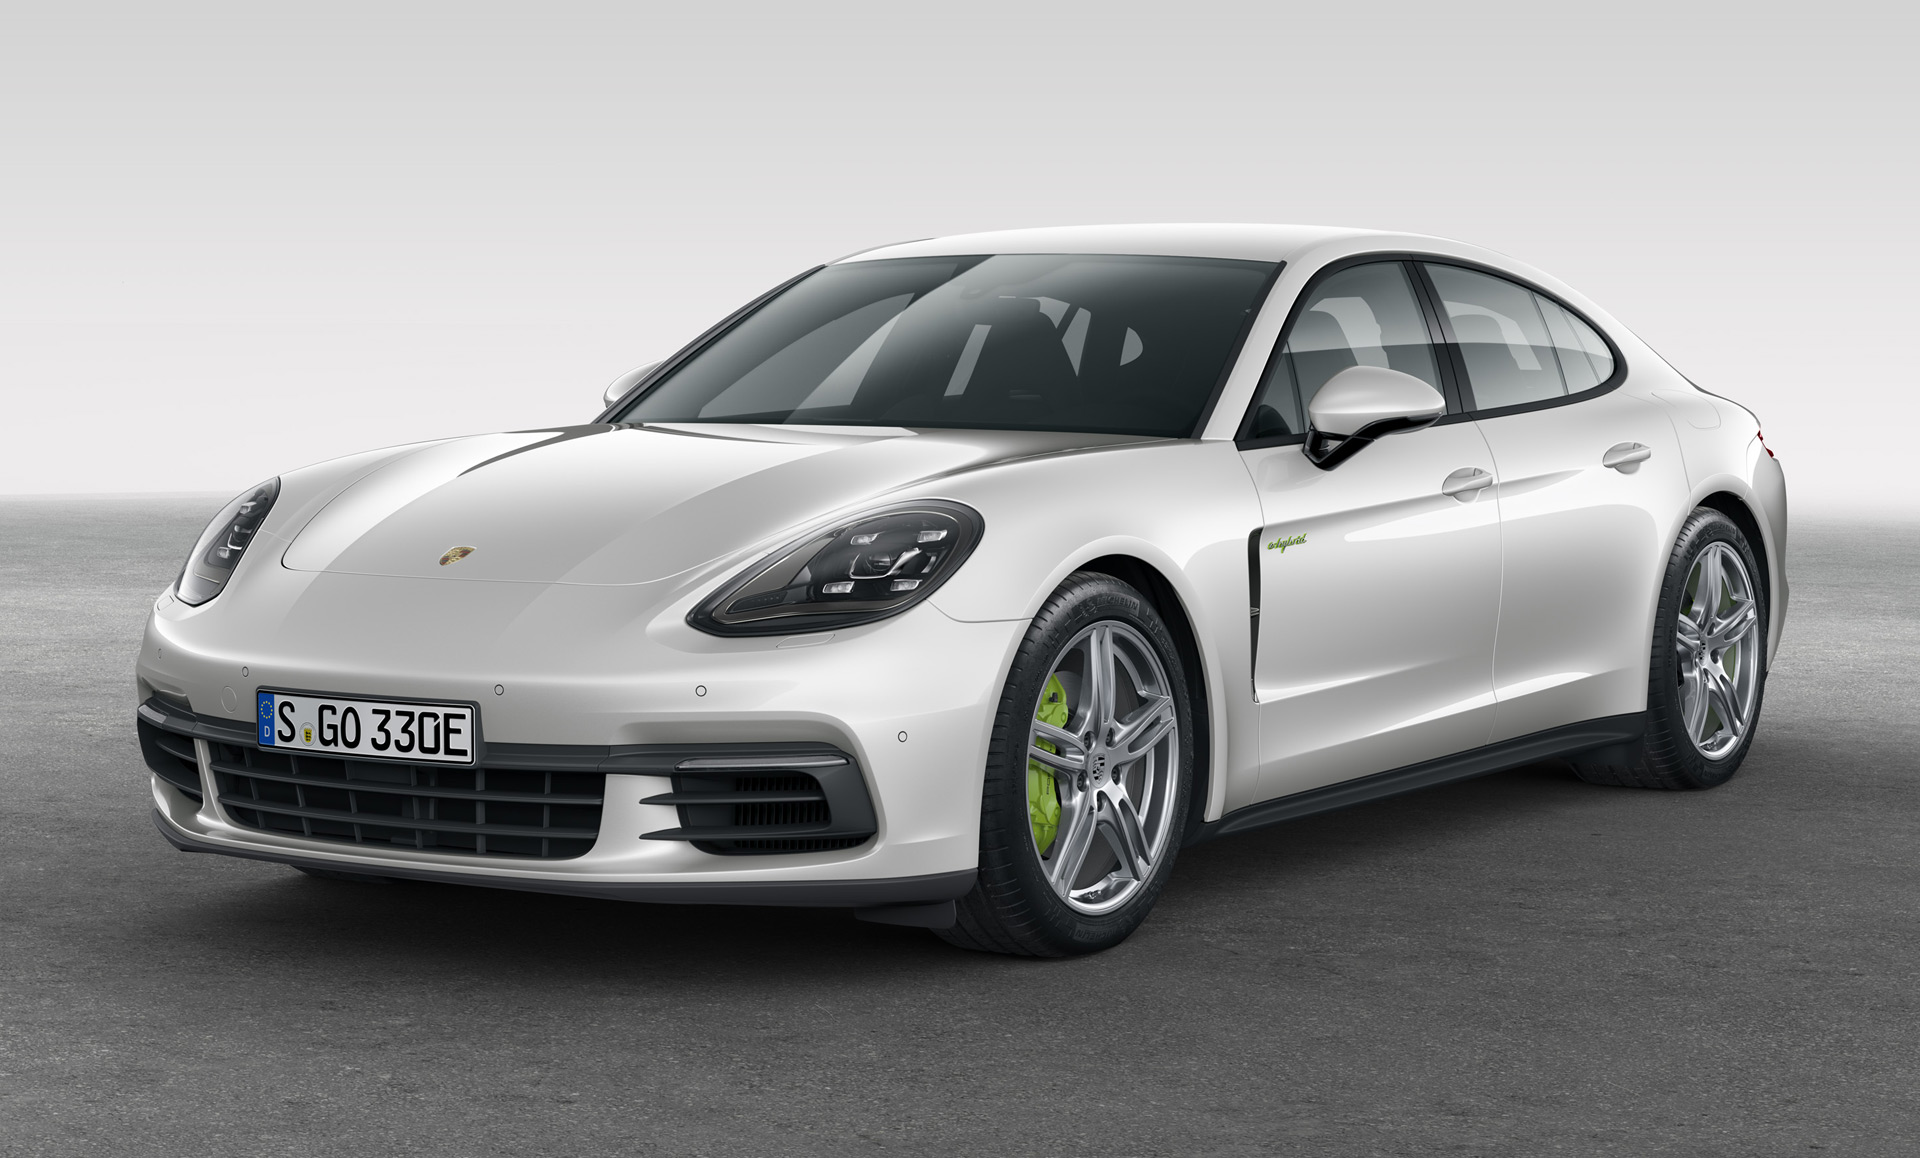 2018 Porsche Panamera 4 e-Hybrid to take on Tesla Model S... sorta